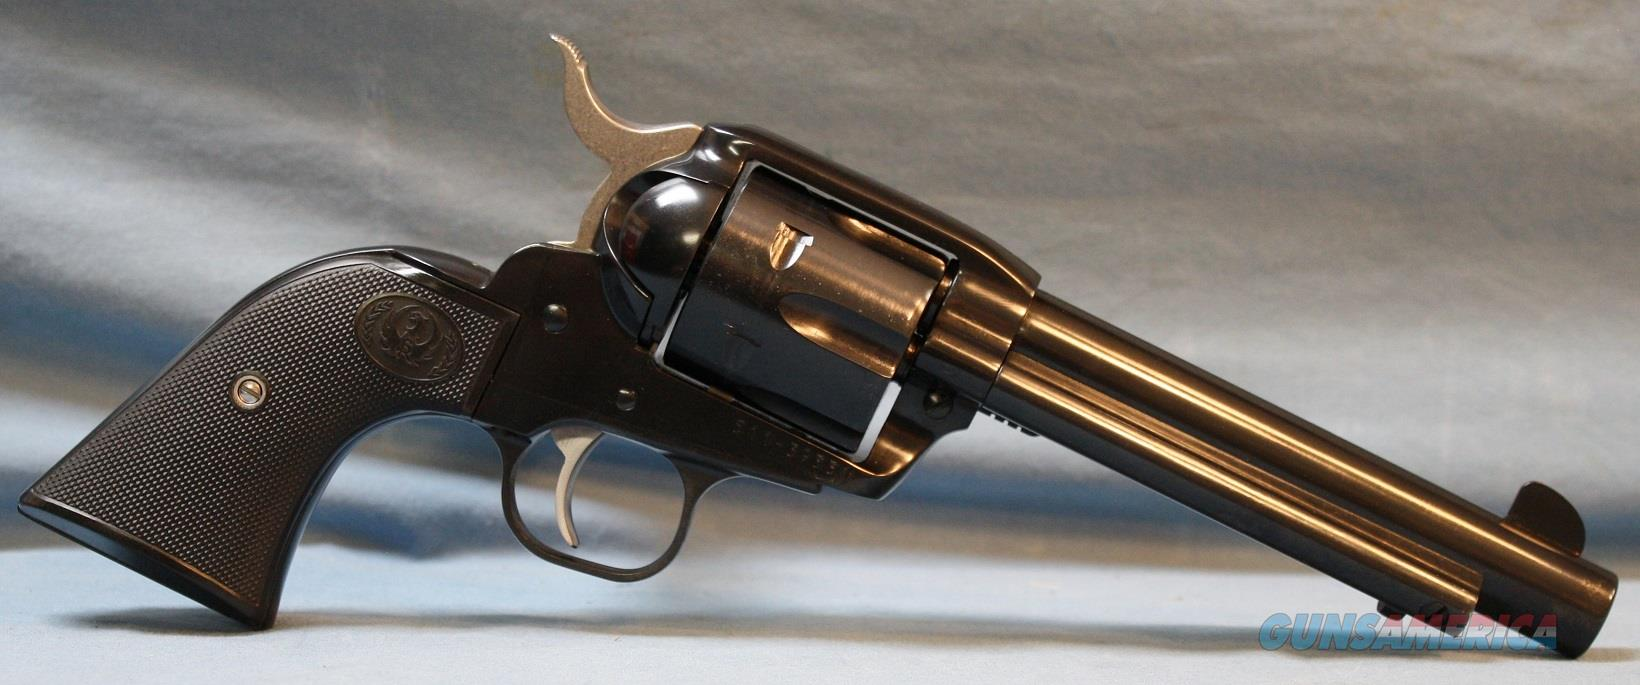 Ruger New Vaquero Single Action Revolver, .45 Colt Free Shipping!  Guns > Pistols > Ruger Single Action Revolvers > Cowboy Action